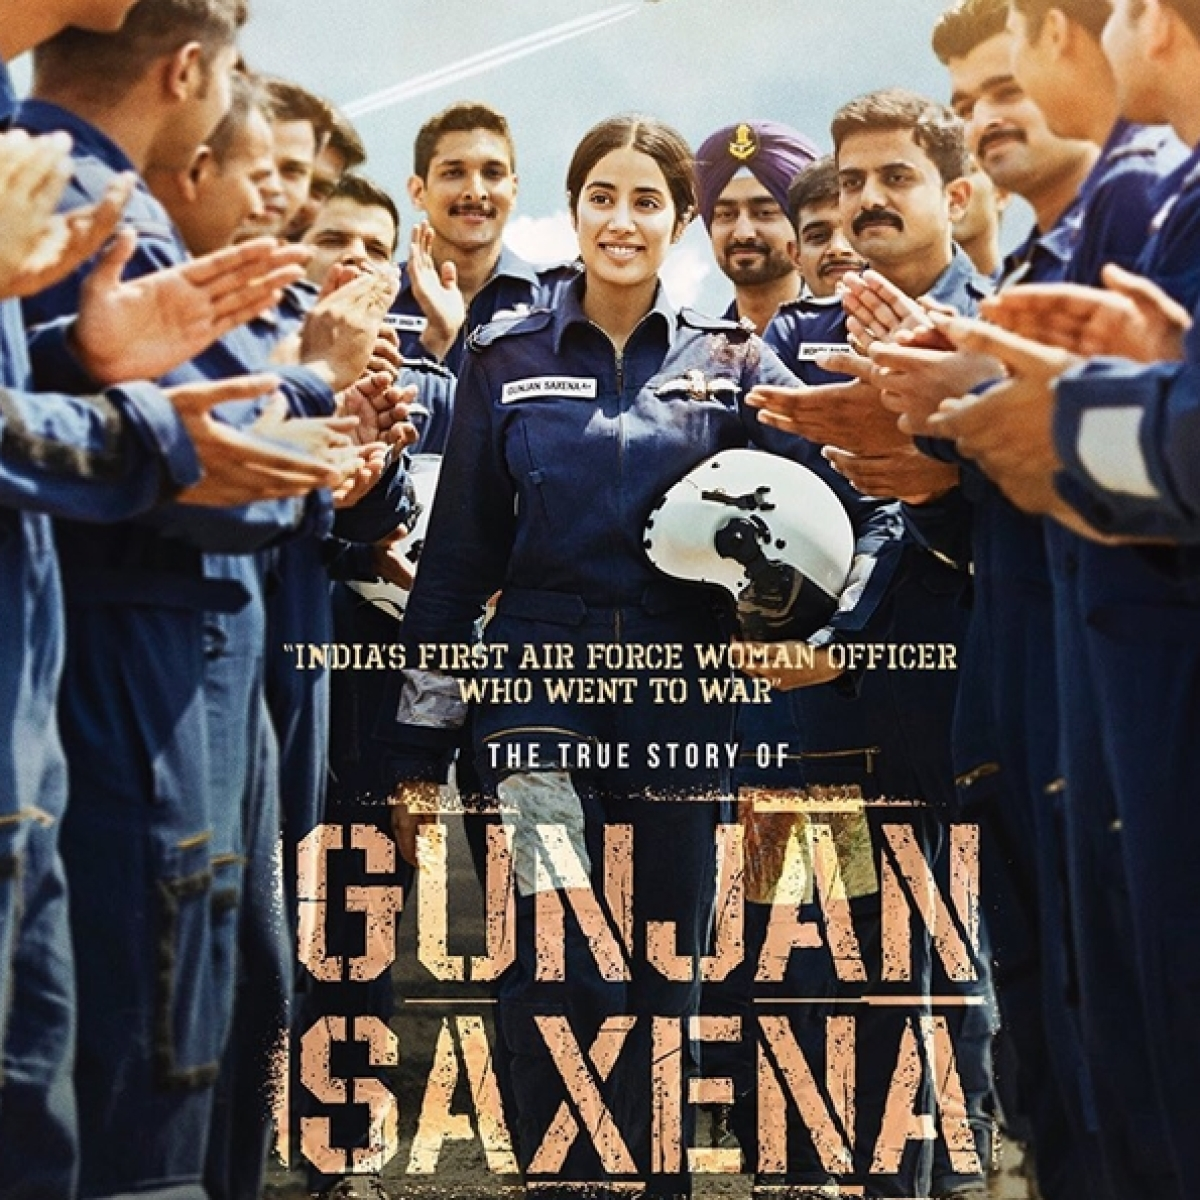 Janhvi Kapoor's 'Gunjan Saxena: The Kargil Girl' to release on Independence Day 2020; trailer to drop on Kargil Diwas